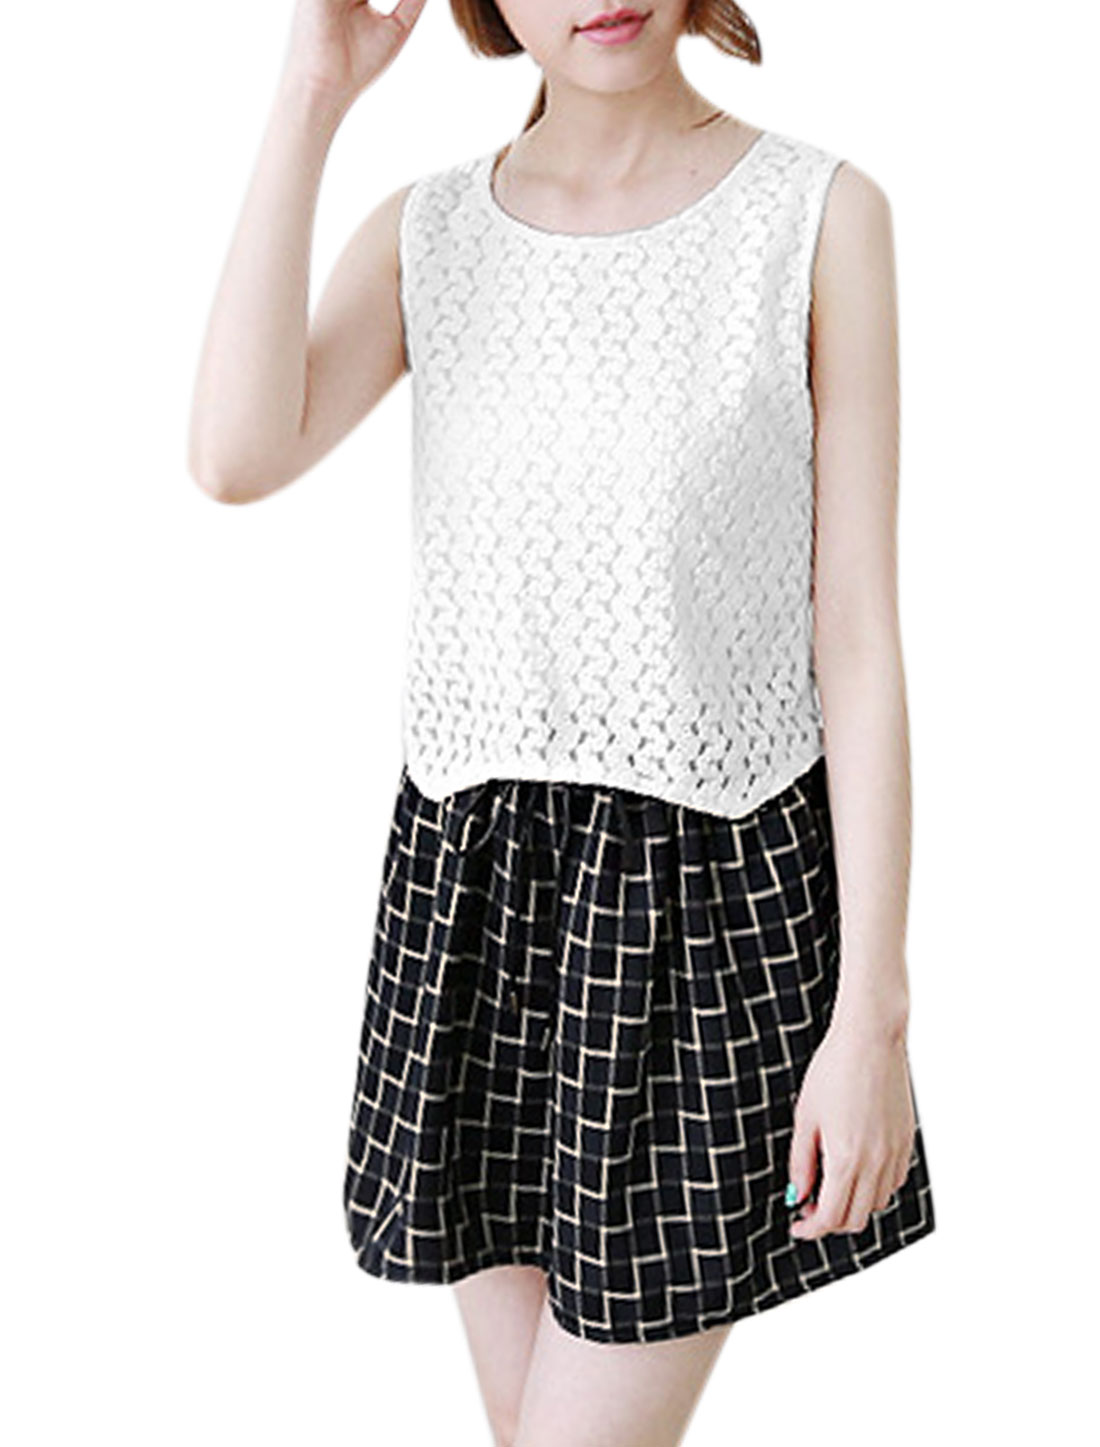 Woman Plaids Lace Panel Crop Top Sleeveless A Line Dress White Black S